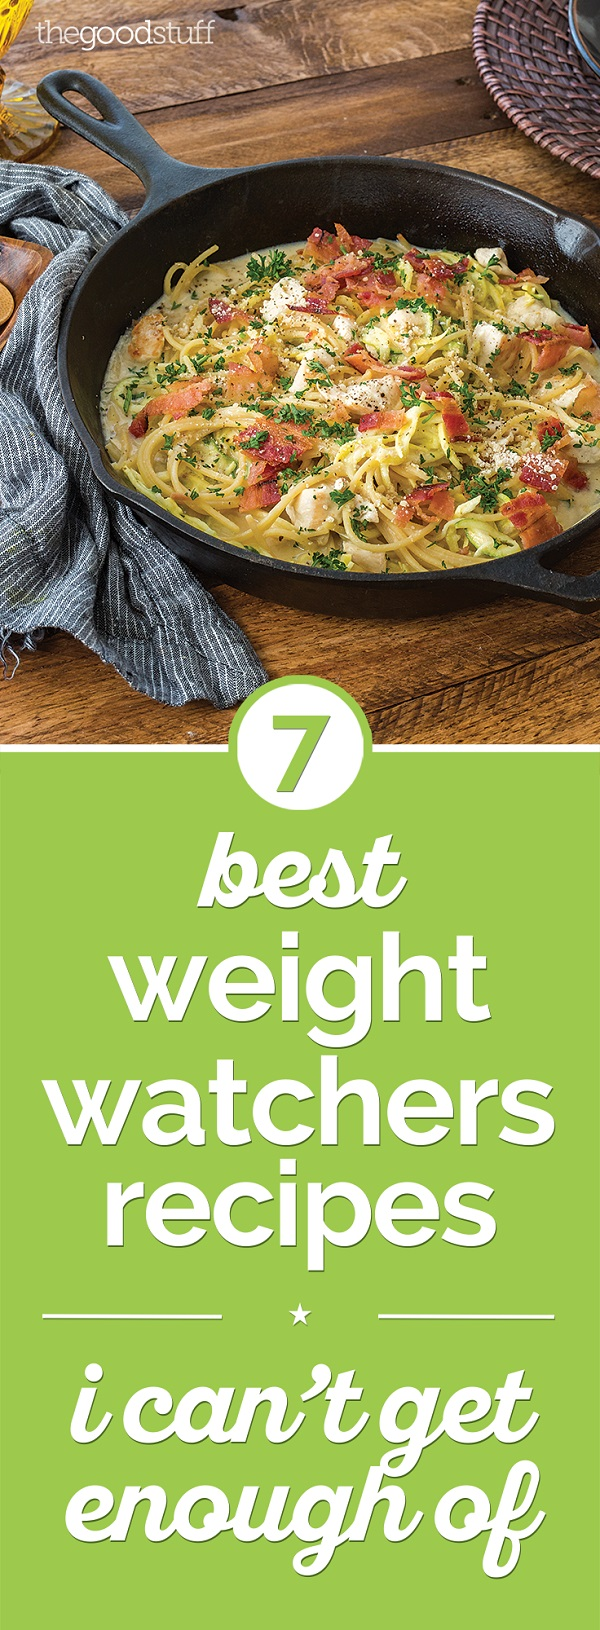 Don't give up the flavor just to get skinny! Try these 7 best Weight Watchers recipes that are full of amazing flavor.